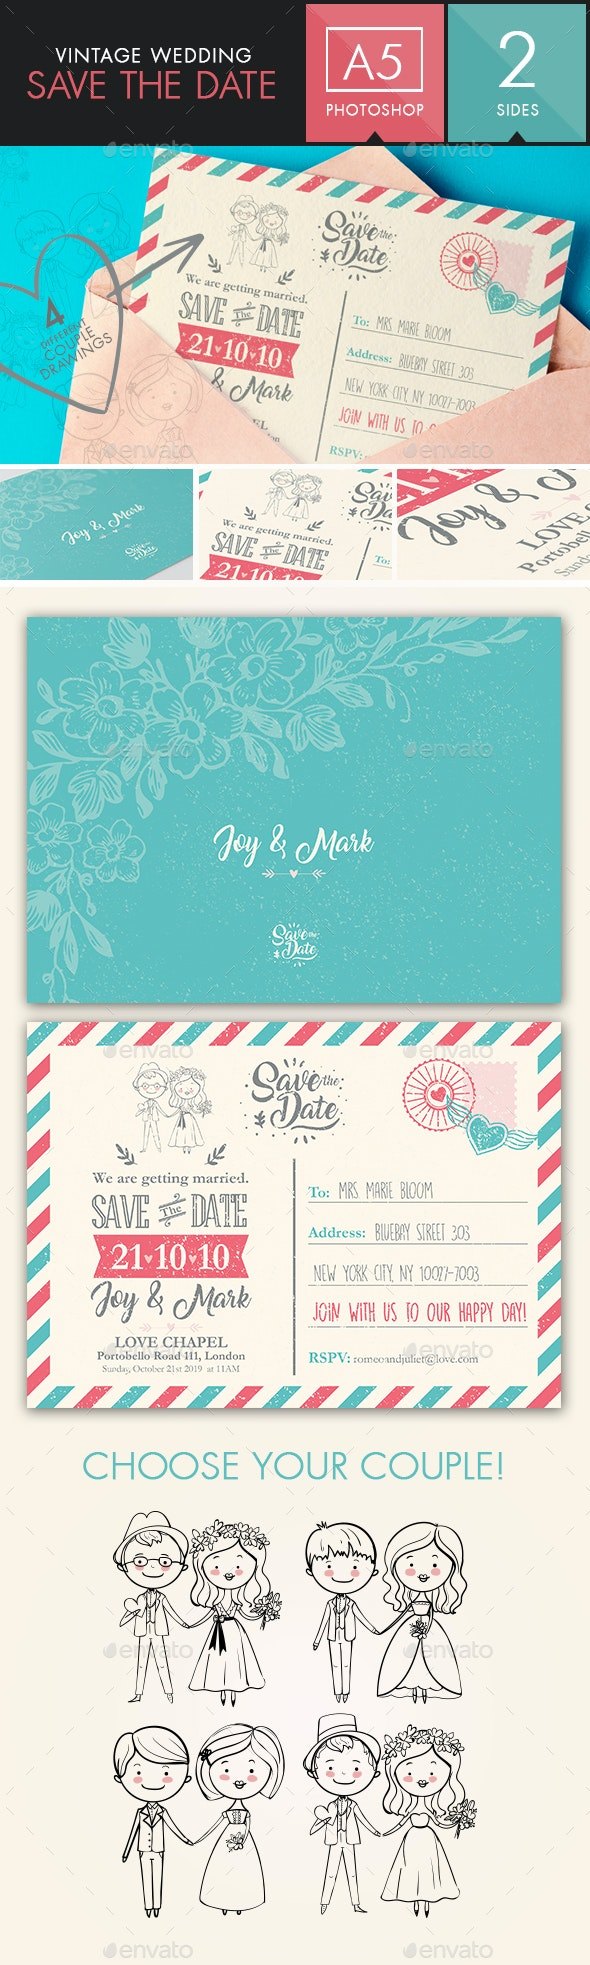 Save the Date - Vintage Wedding Postcard - Weddings Cards & Invites